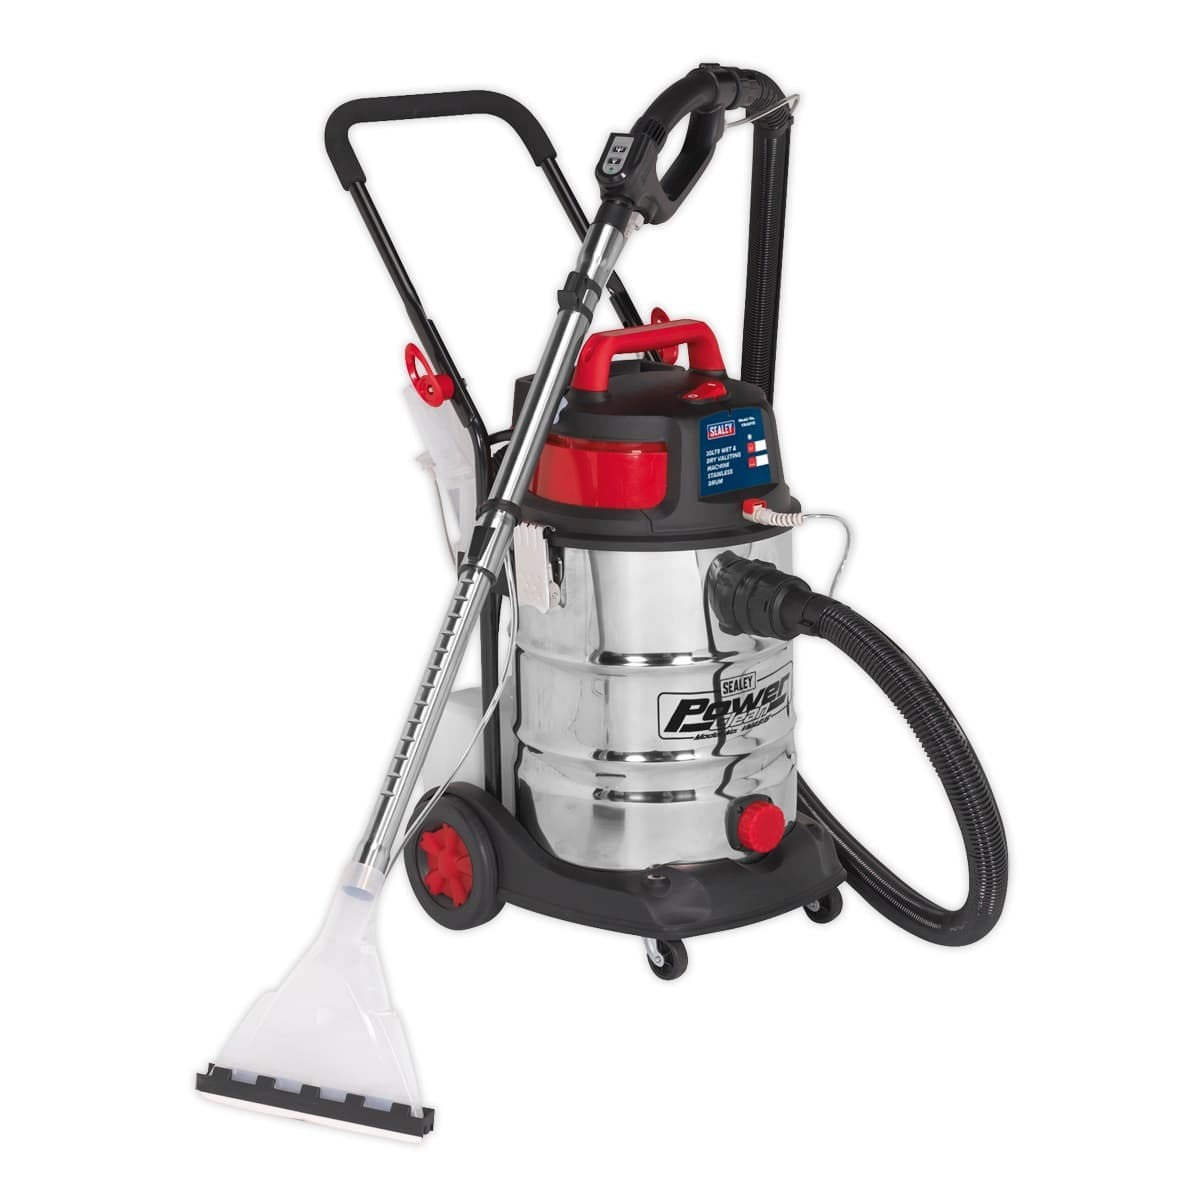 Valet Machine Wet & Dry 30L Stainless Drum | High powered unit ideal for cleaning carpets, car interiors, fabrics and upholstery. | toolforce.ie